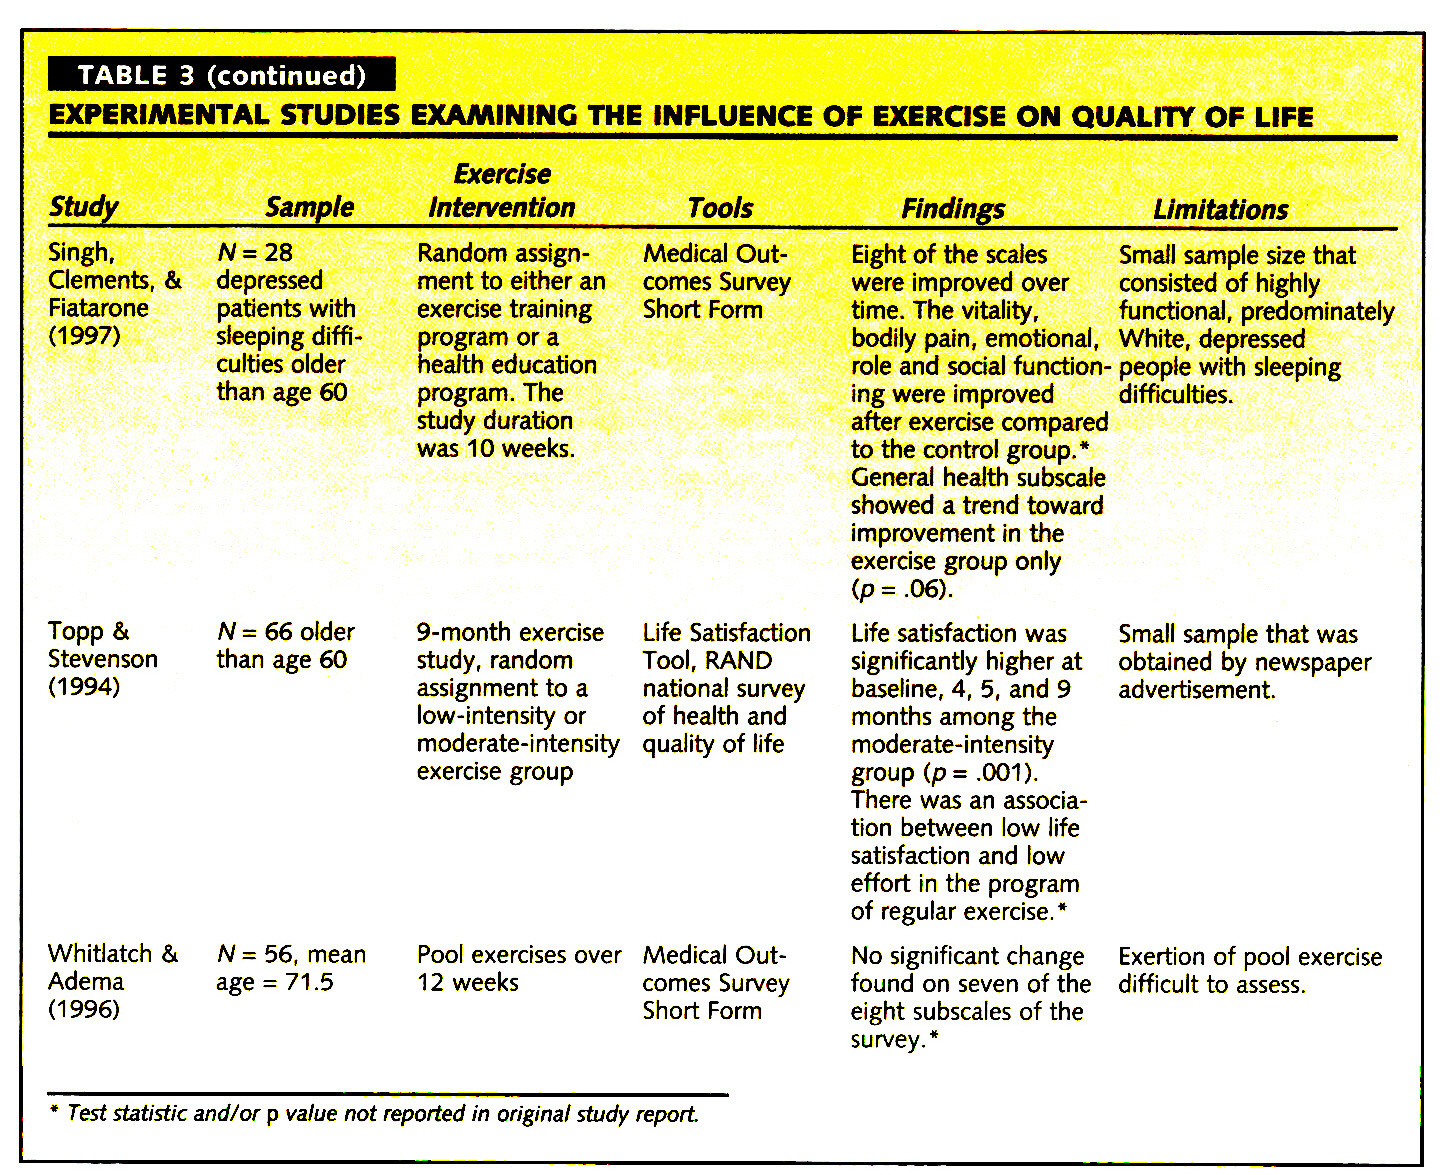 TABLE 3EXPERIMENTAL STUDIES EXAMINING THE INFLUENCE OF EXERCISE ON QUALITY OF LIFE